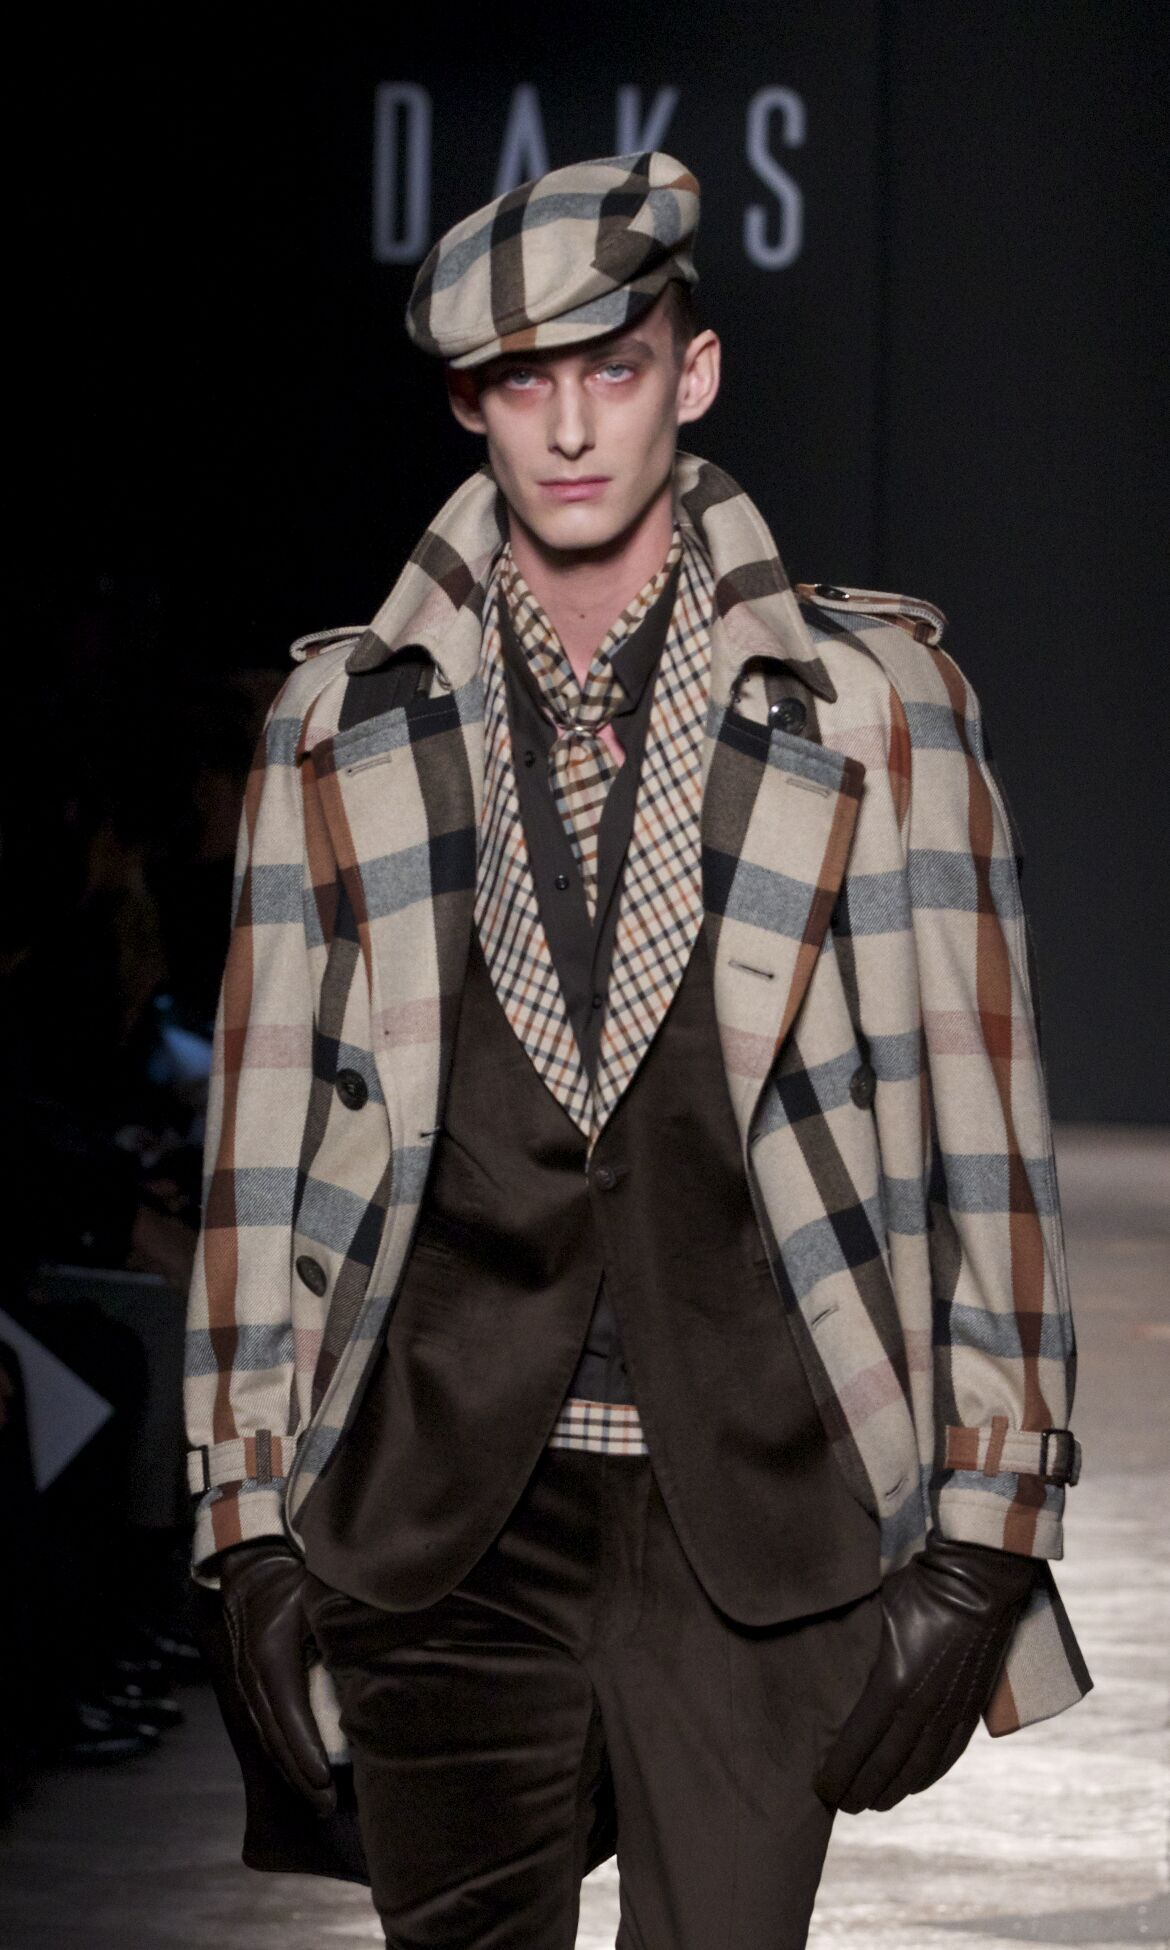 Fall Winter 2013 14 Fashion Men's Collection Daks